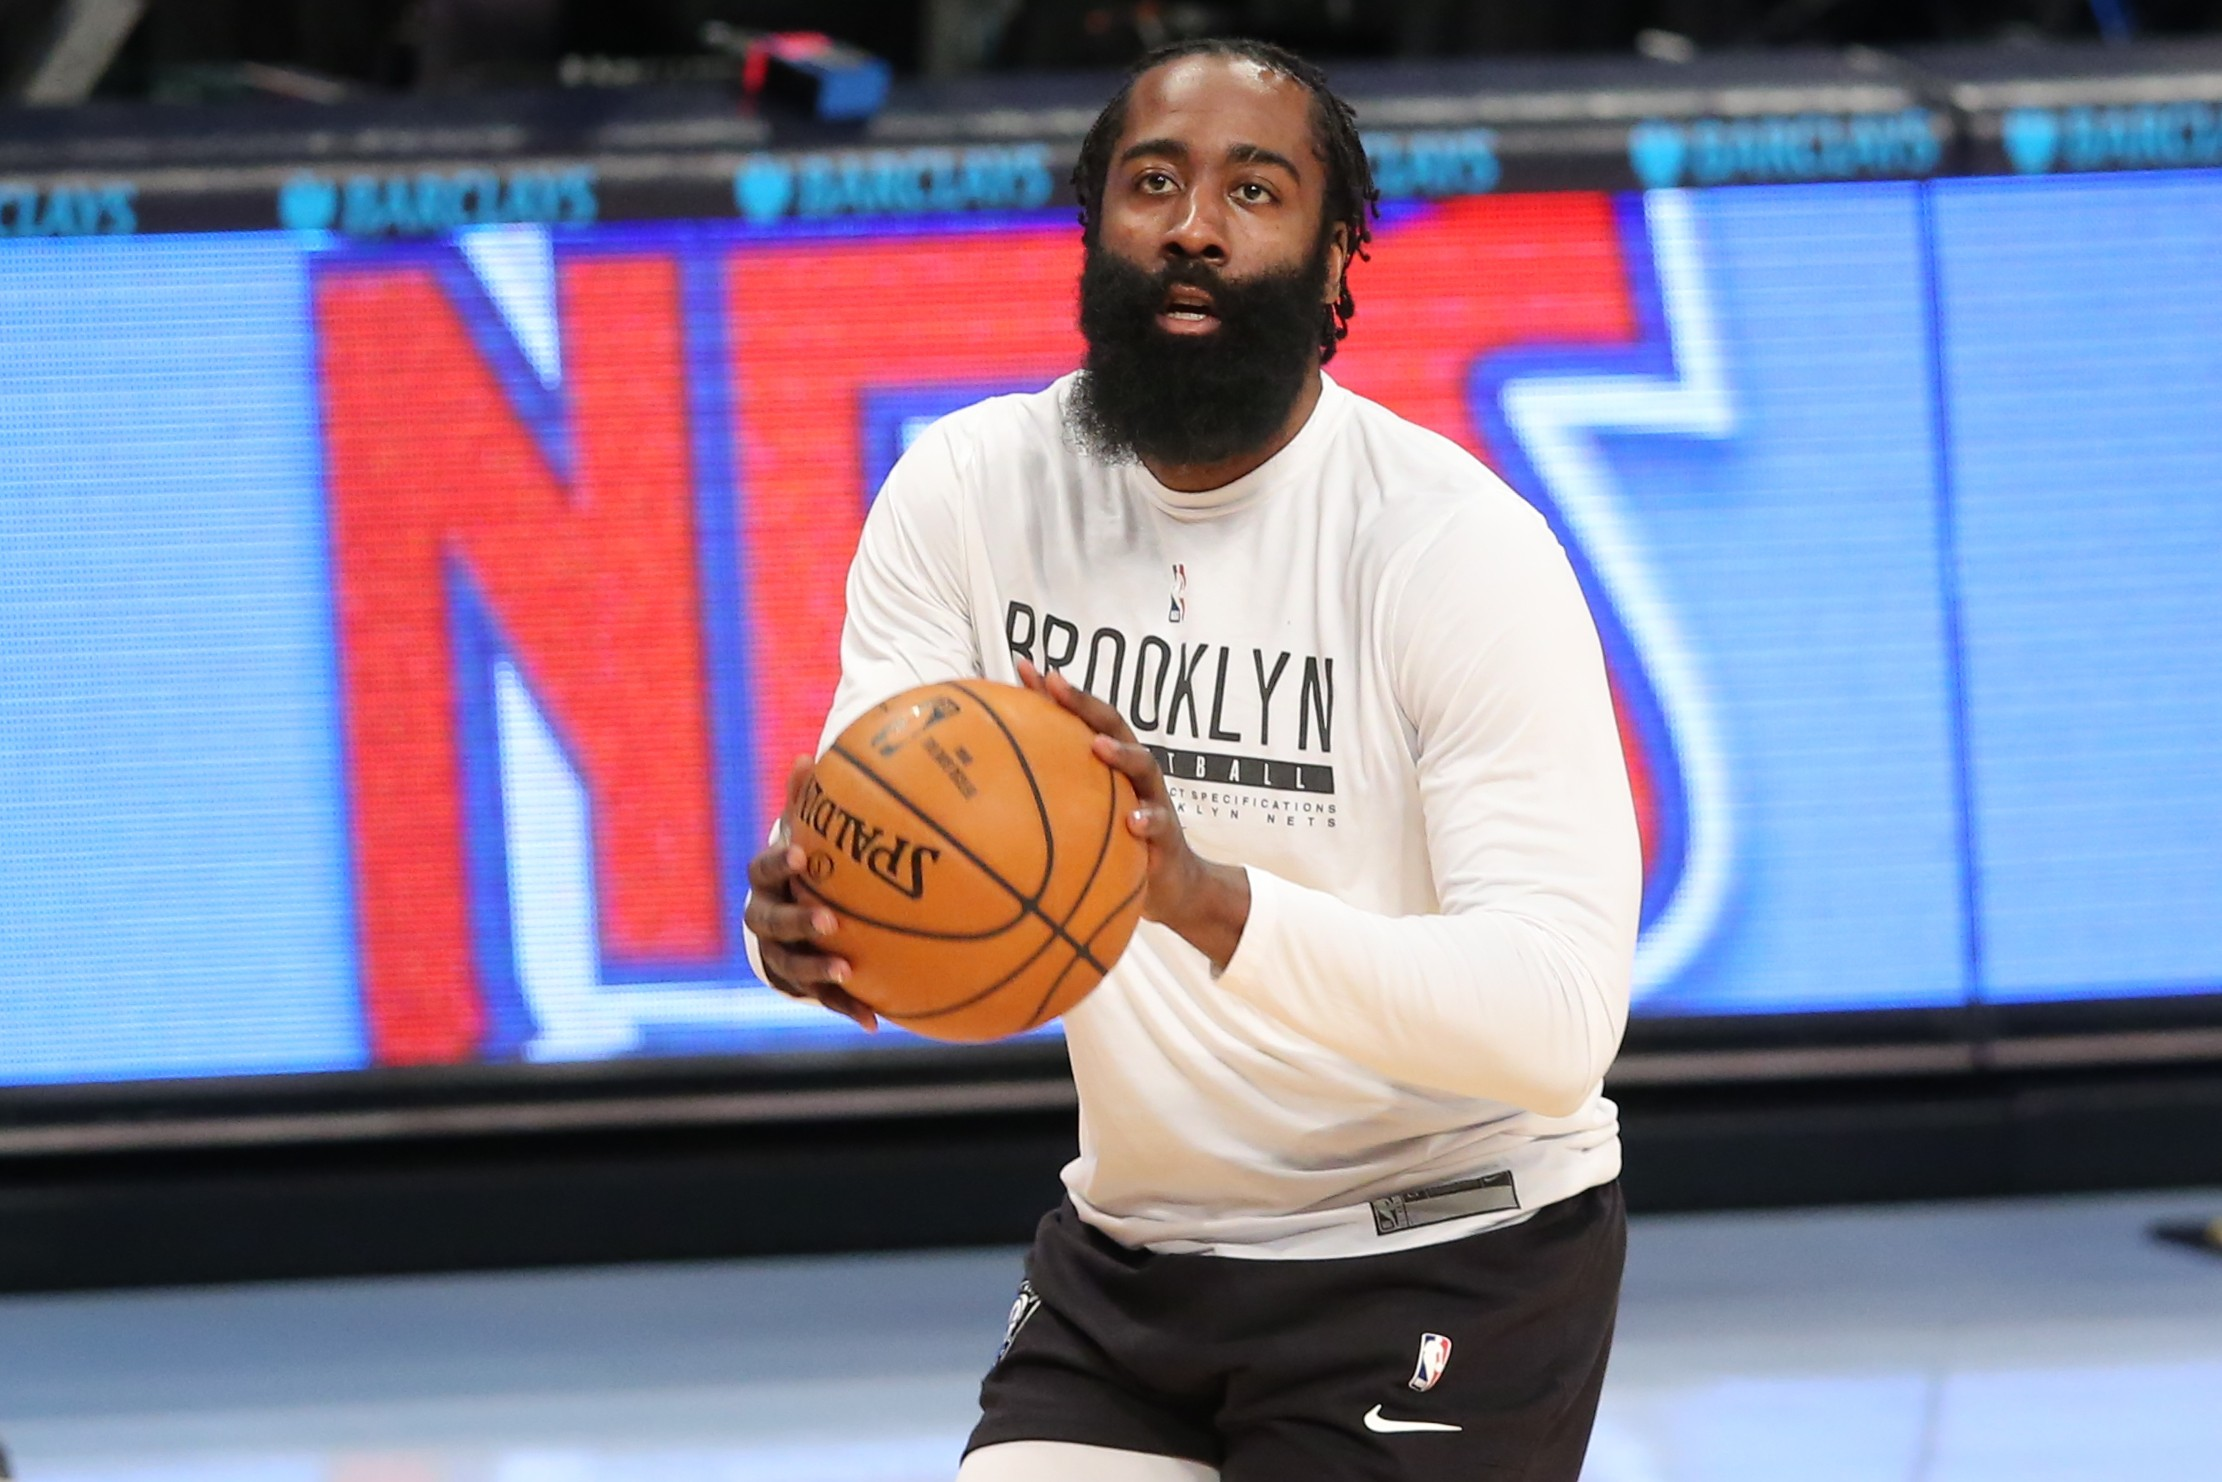 James Harden offers to cover half the price of Nets' playoff tickets